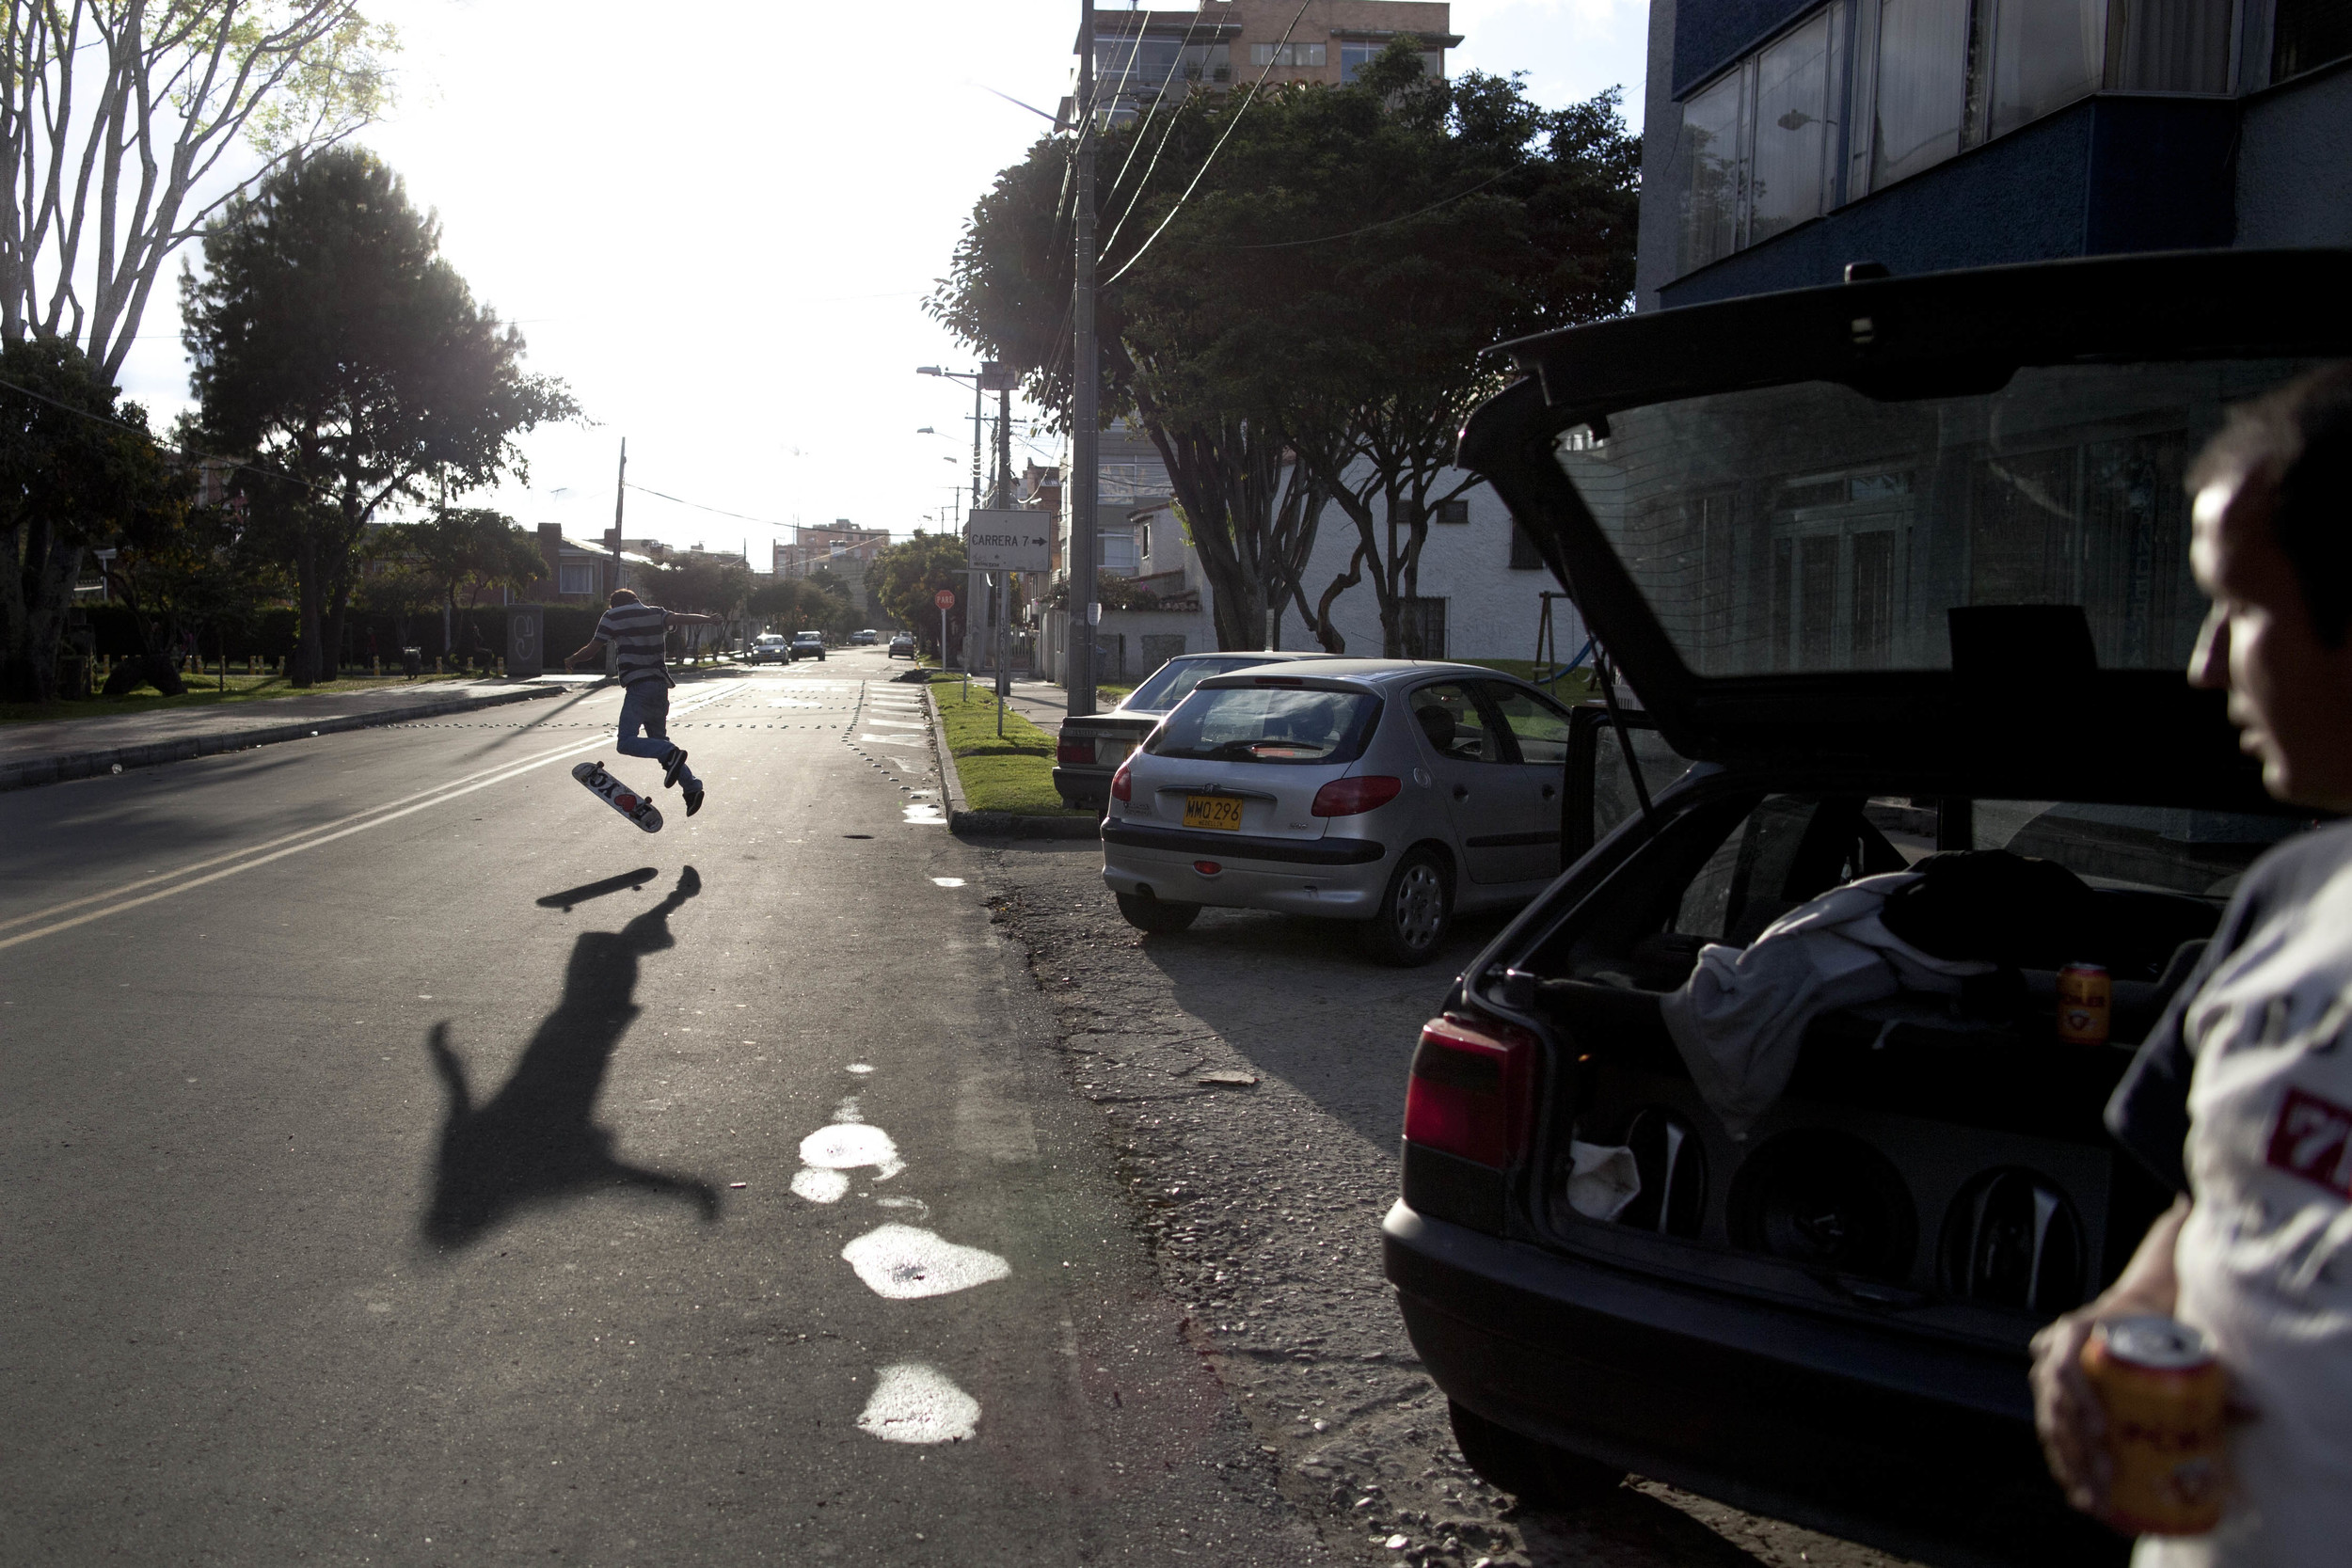 Bogotá. 22 July 2012. Felipe skateboarding on a road close to his home in Bogotá while being watched by his dad Alvaro.